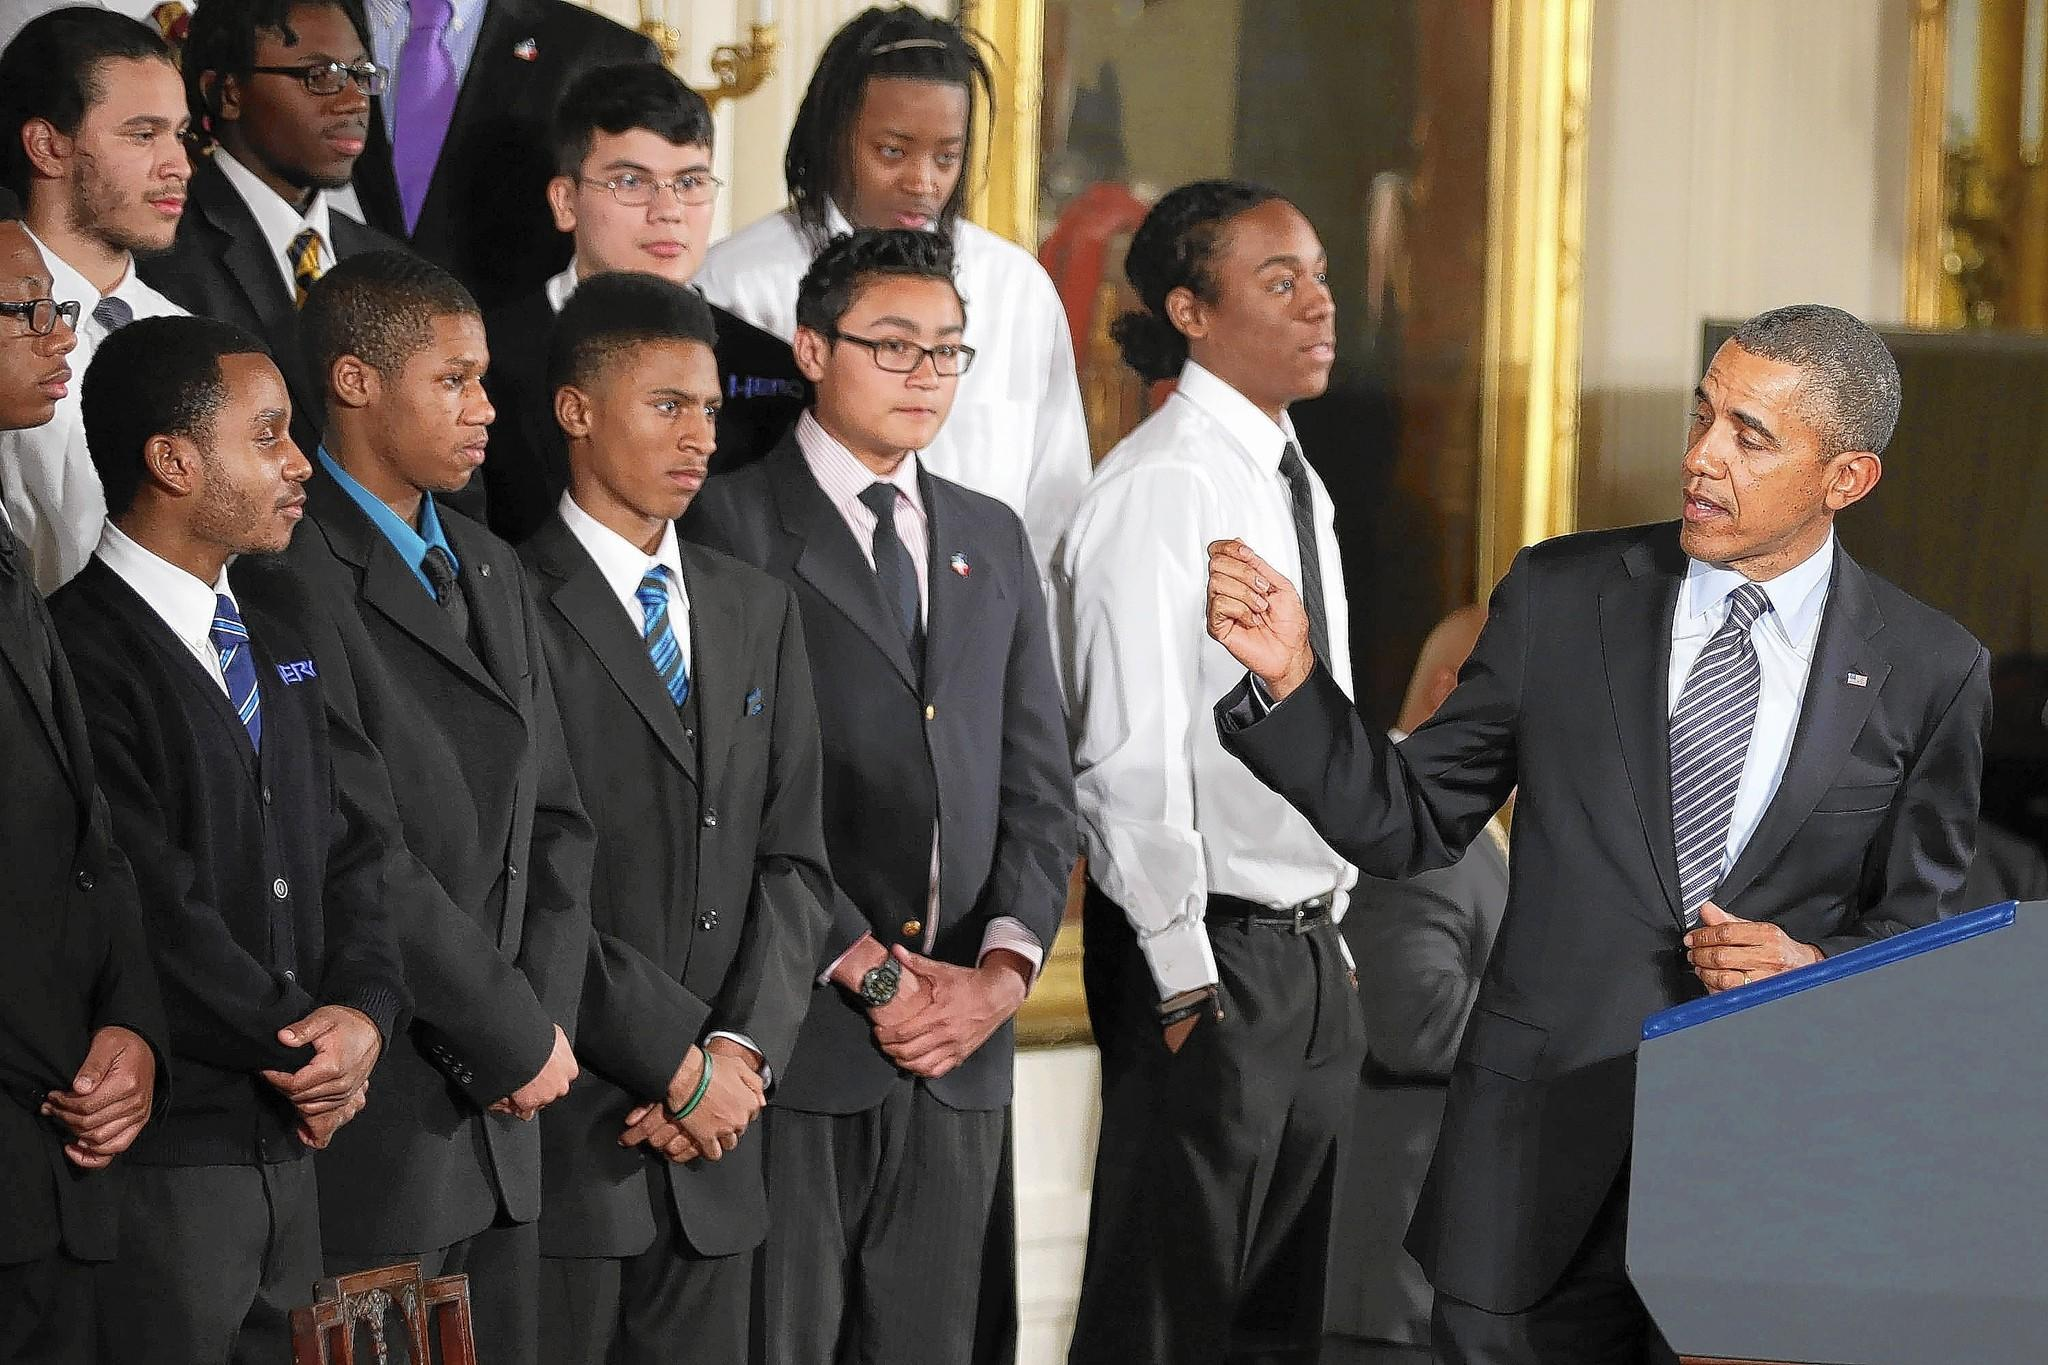 President Barack Obama introduced his My Brother's Keeper initiative with students from Chicago at the White House last week.